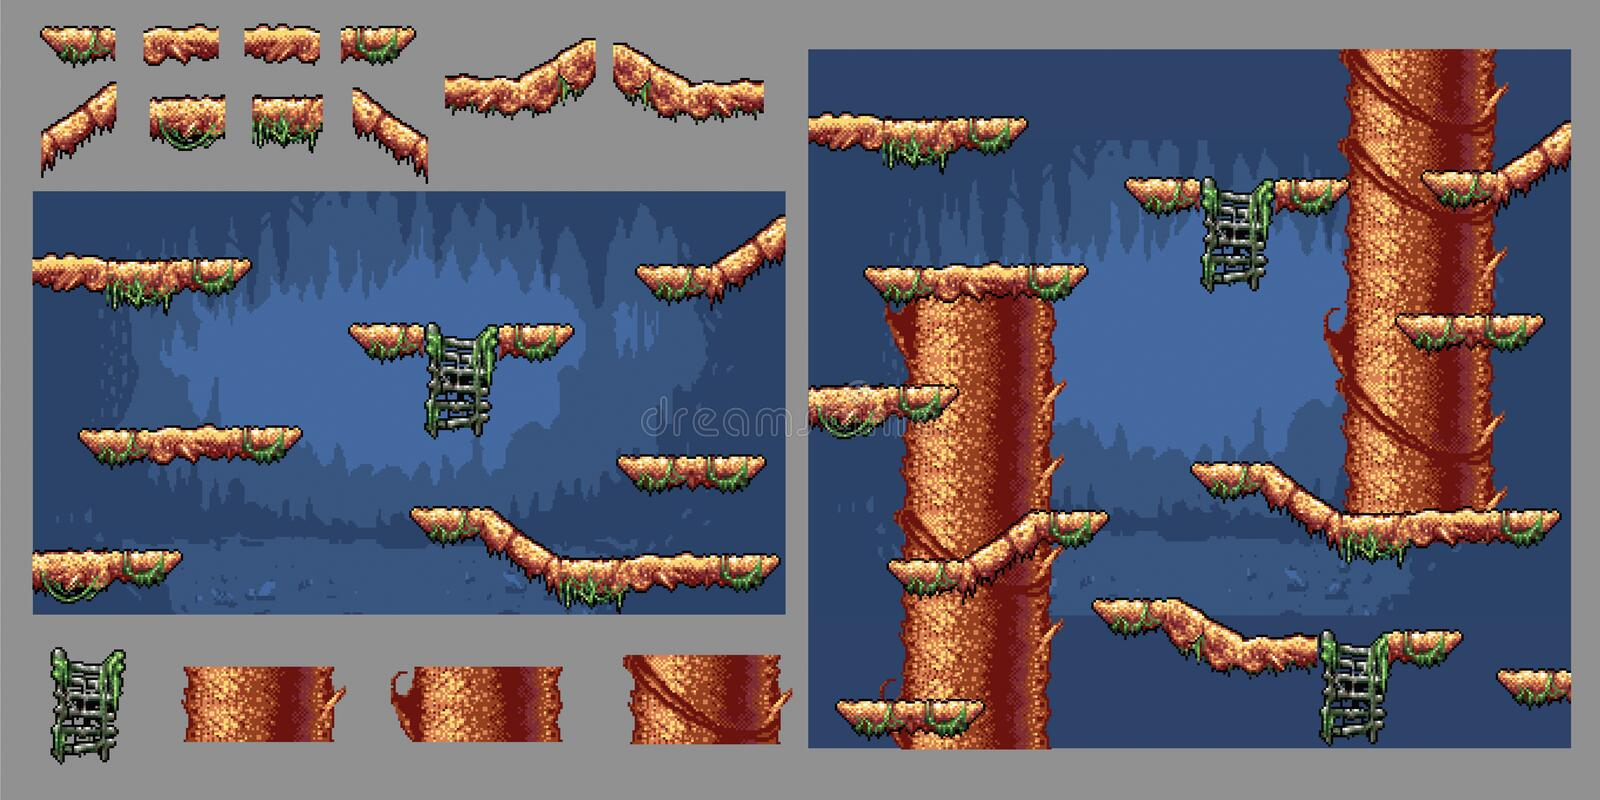 Platform forest tree game pixel art graphics kit, vector illustration royalty free stock photos